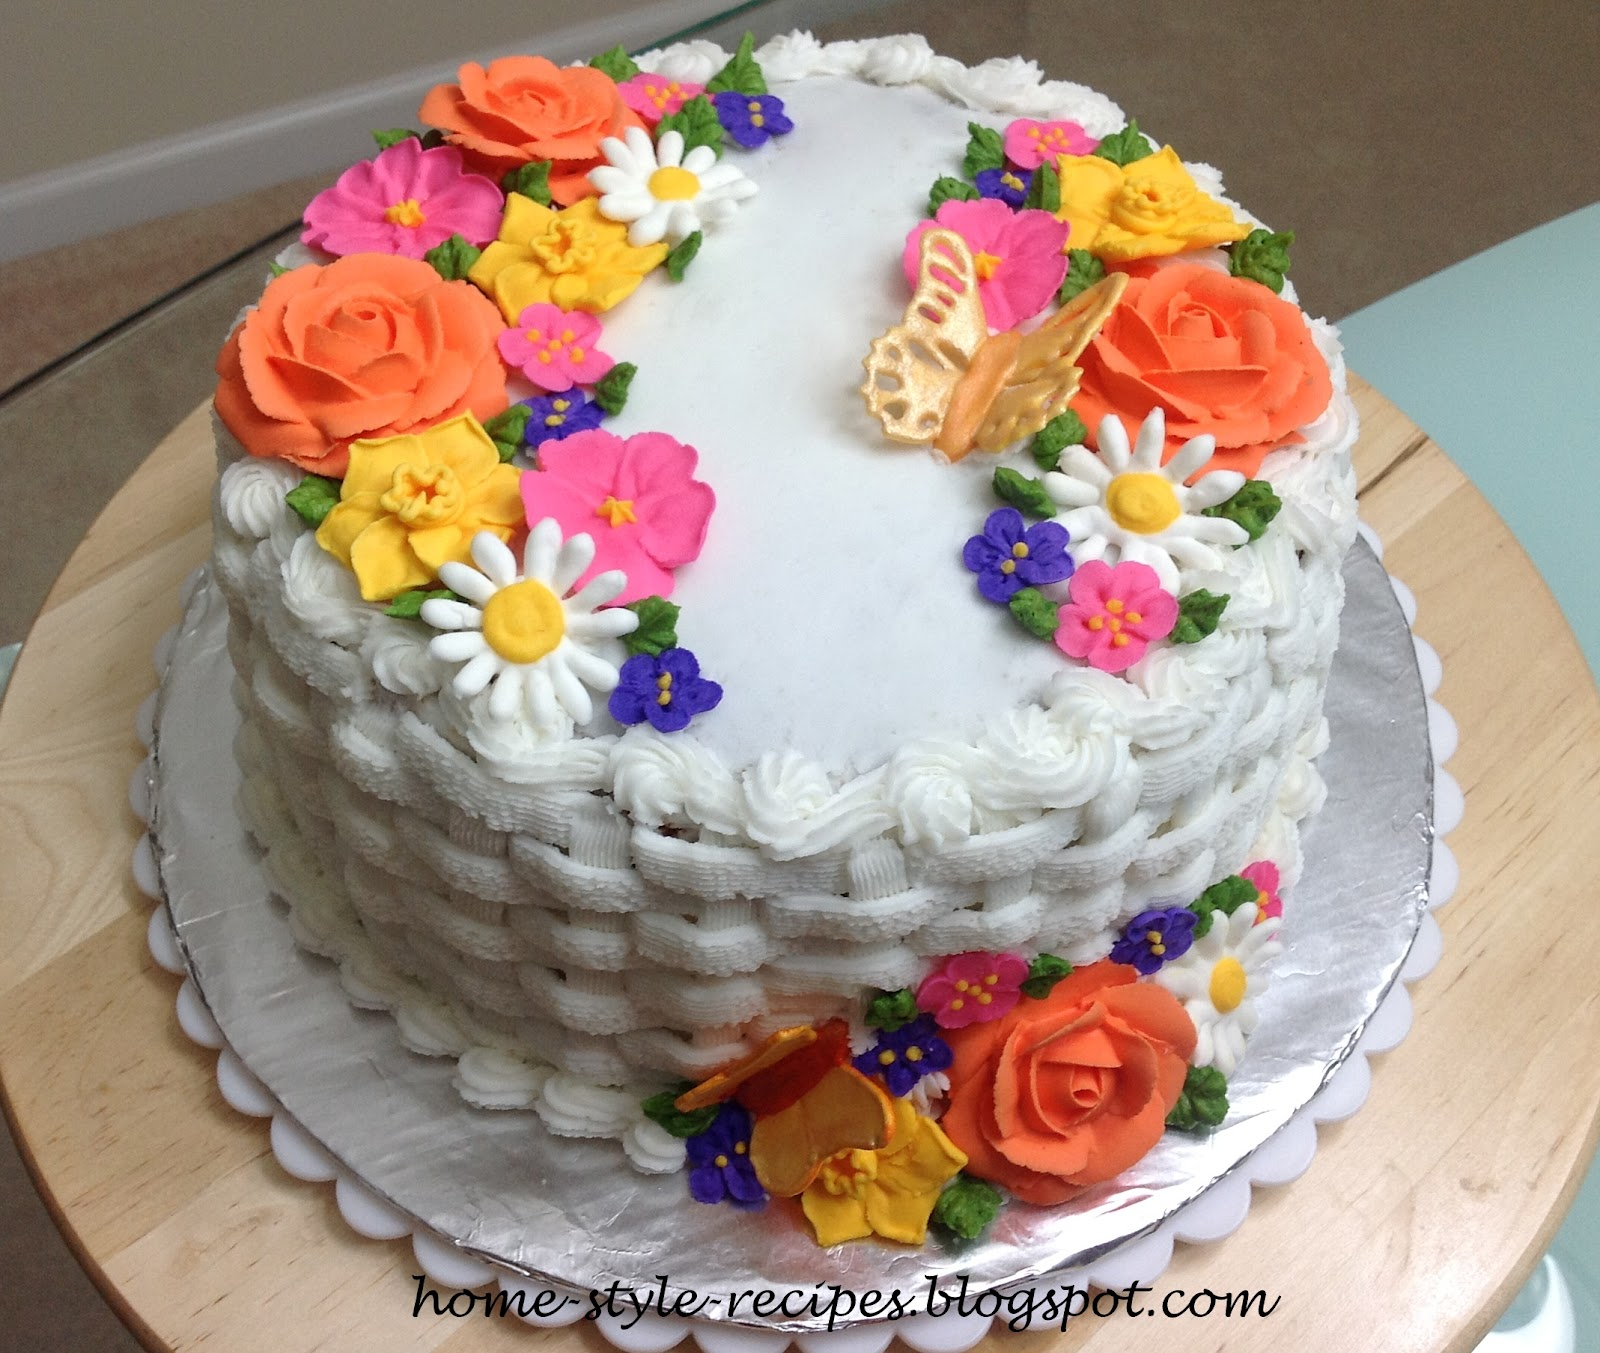 Cake Design Wilton : Wilton Course 2 Cake Ideas on Pinterest Brush Embroidery ...